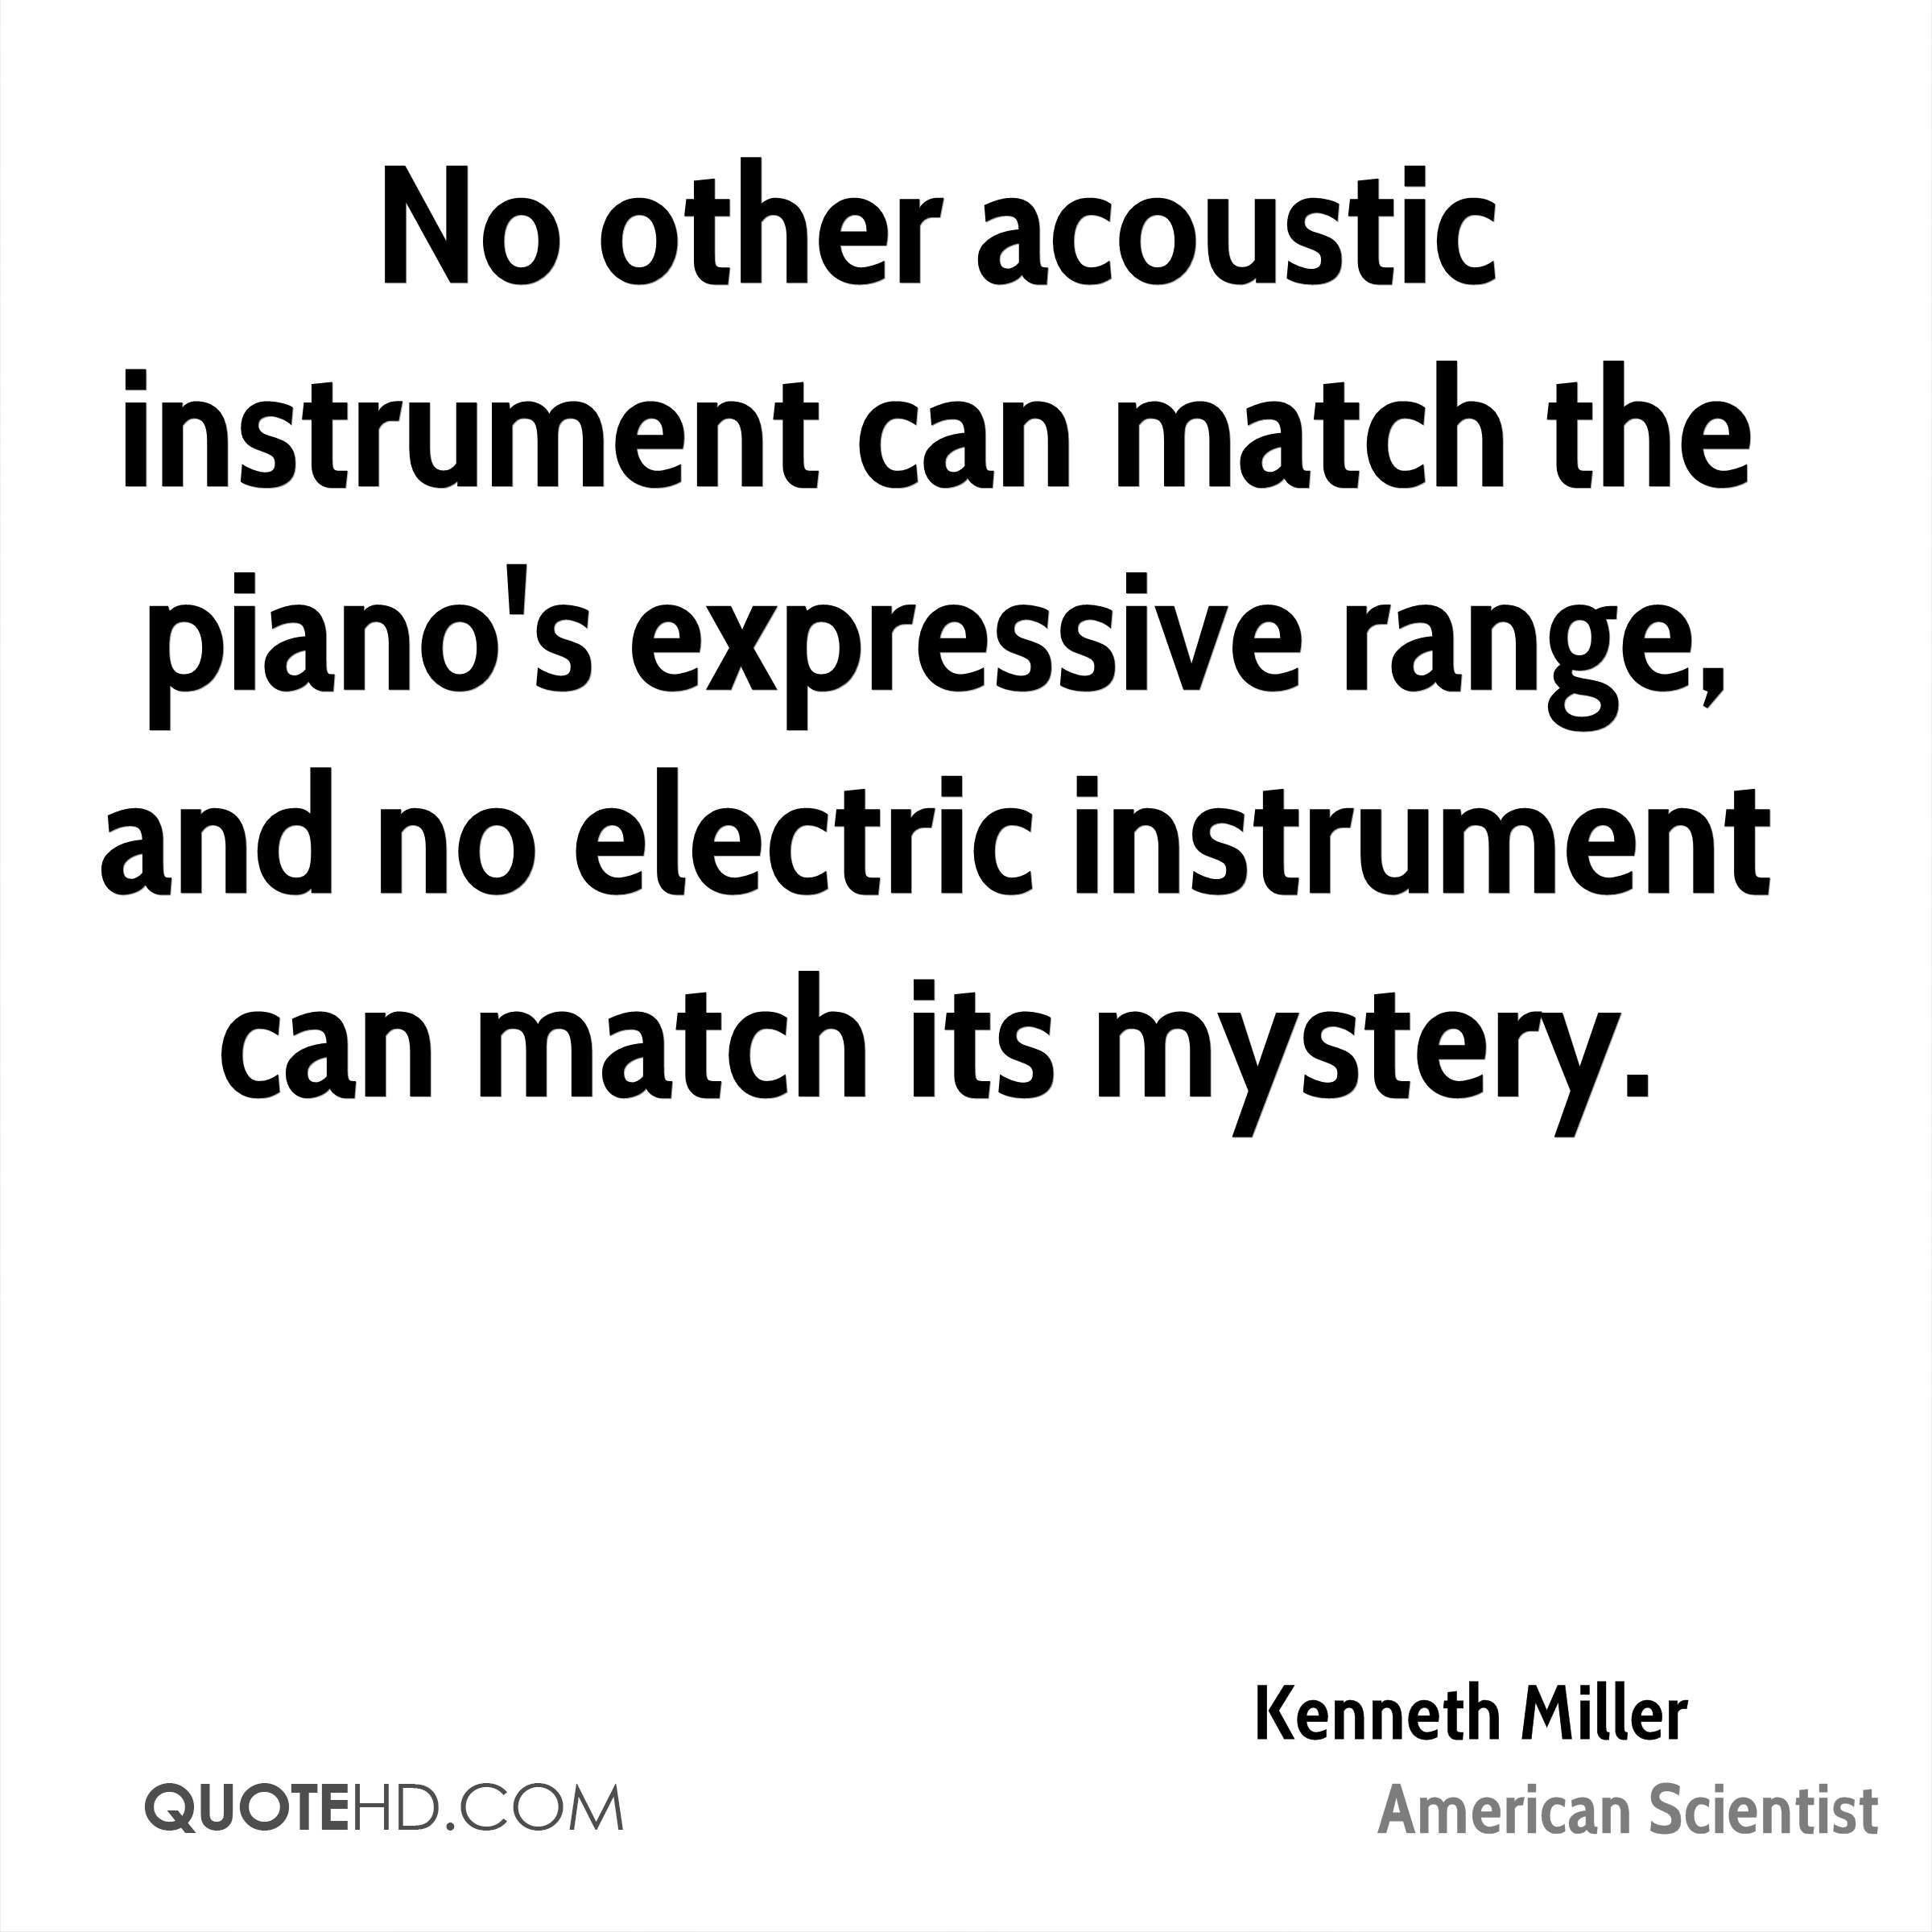 No other acoustic instrument can match the piano's expressive range, and no electric instrument can match its mystery.